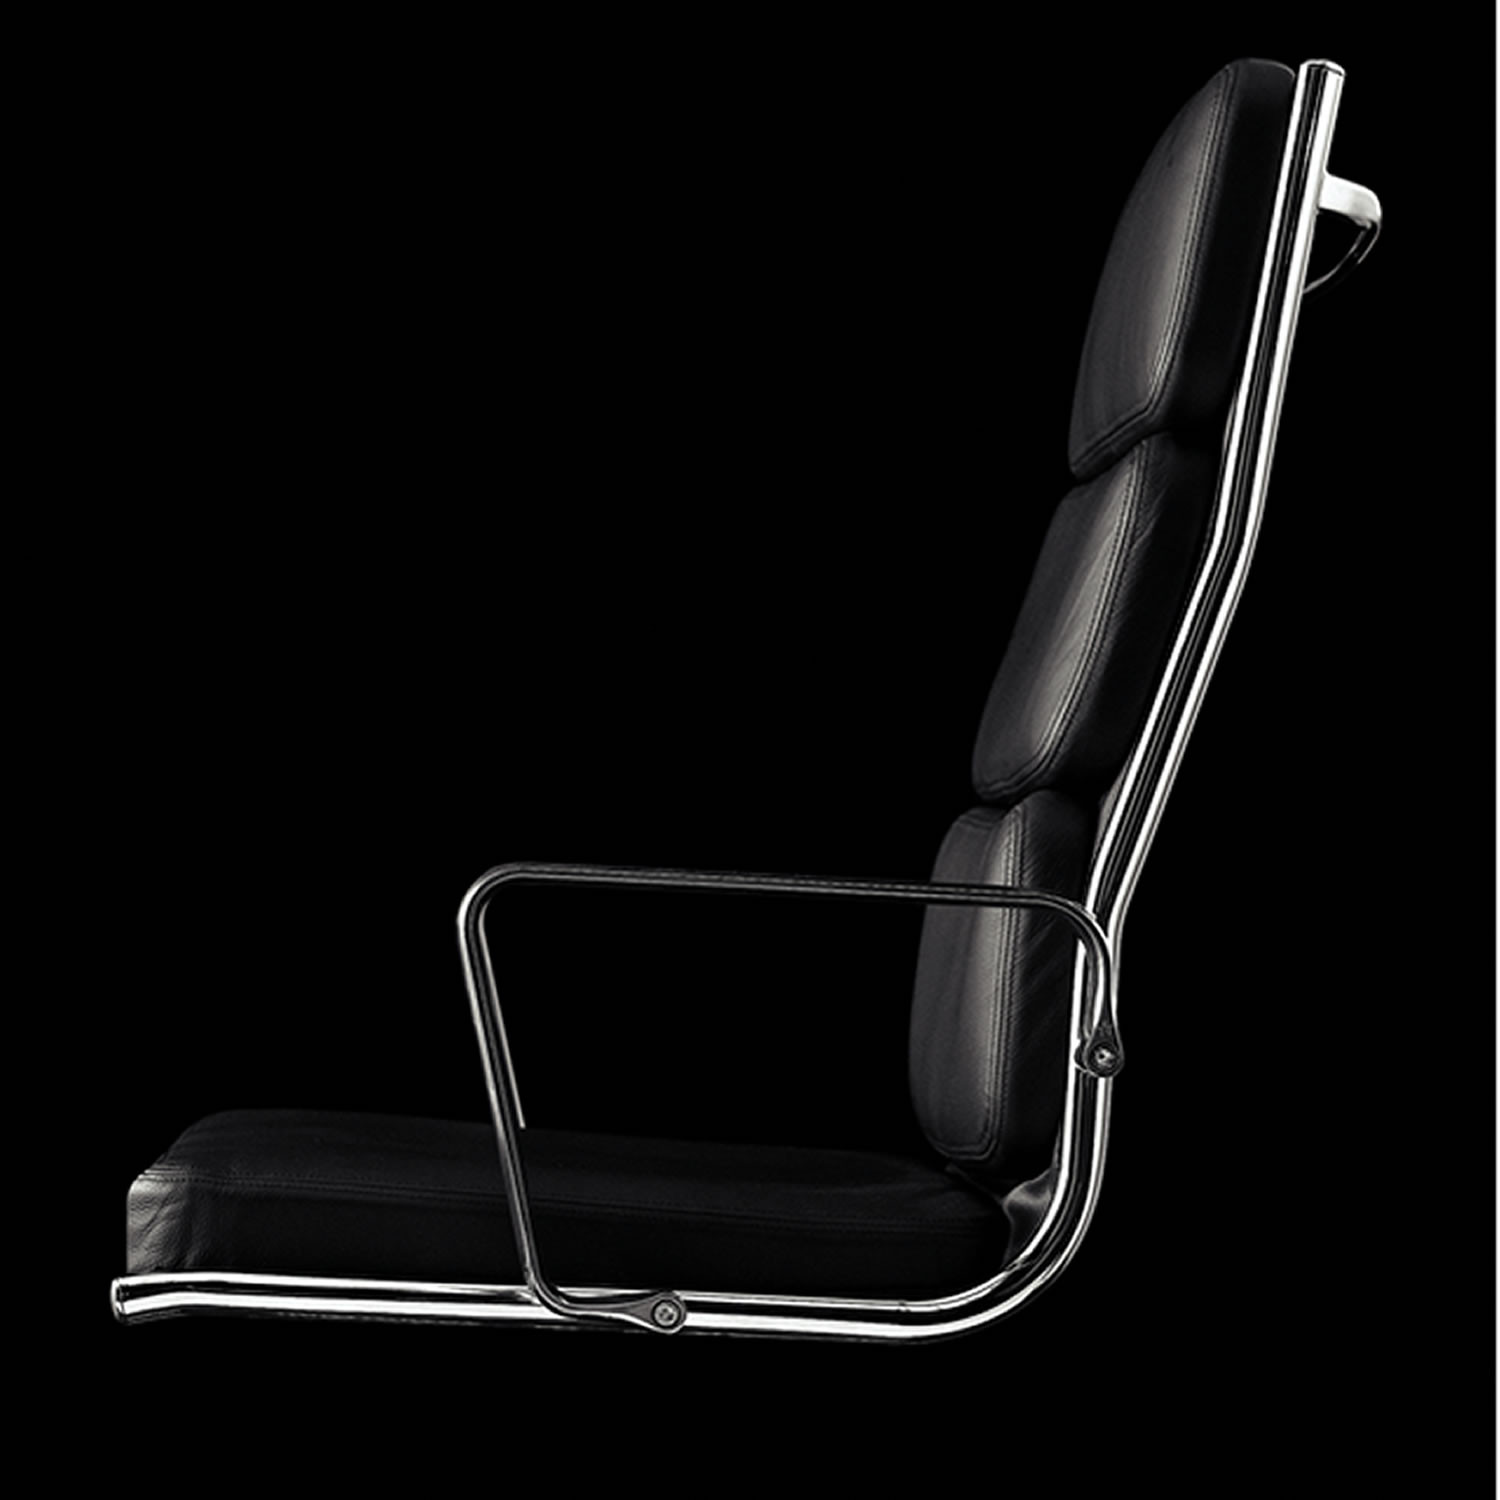 Light Executive Office Chair is upholstered in leather